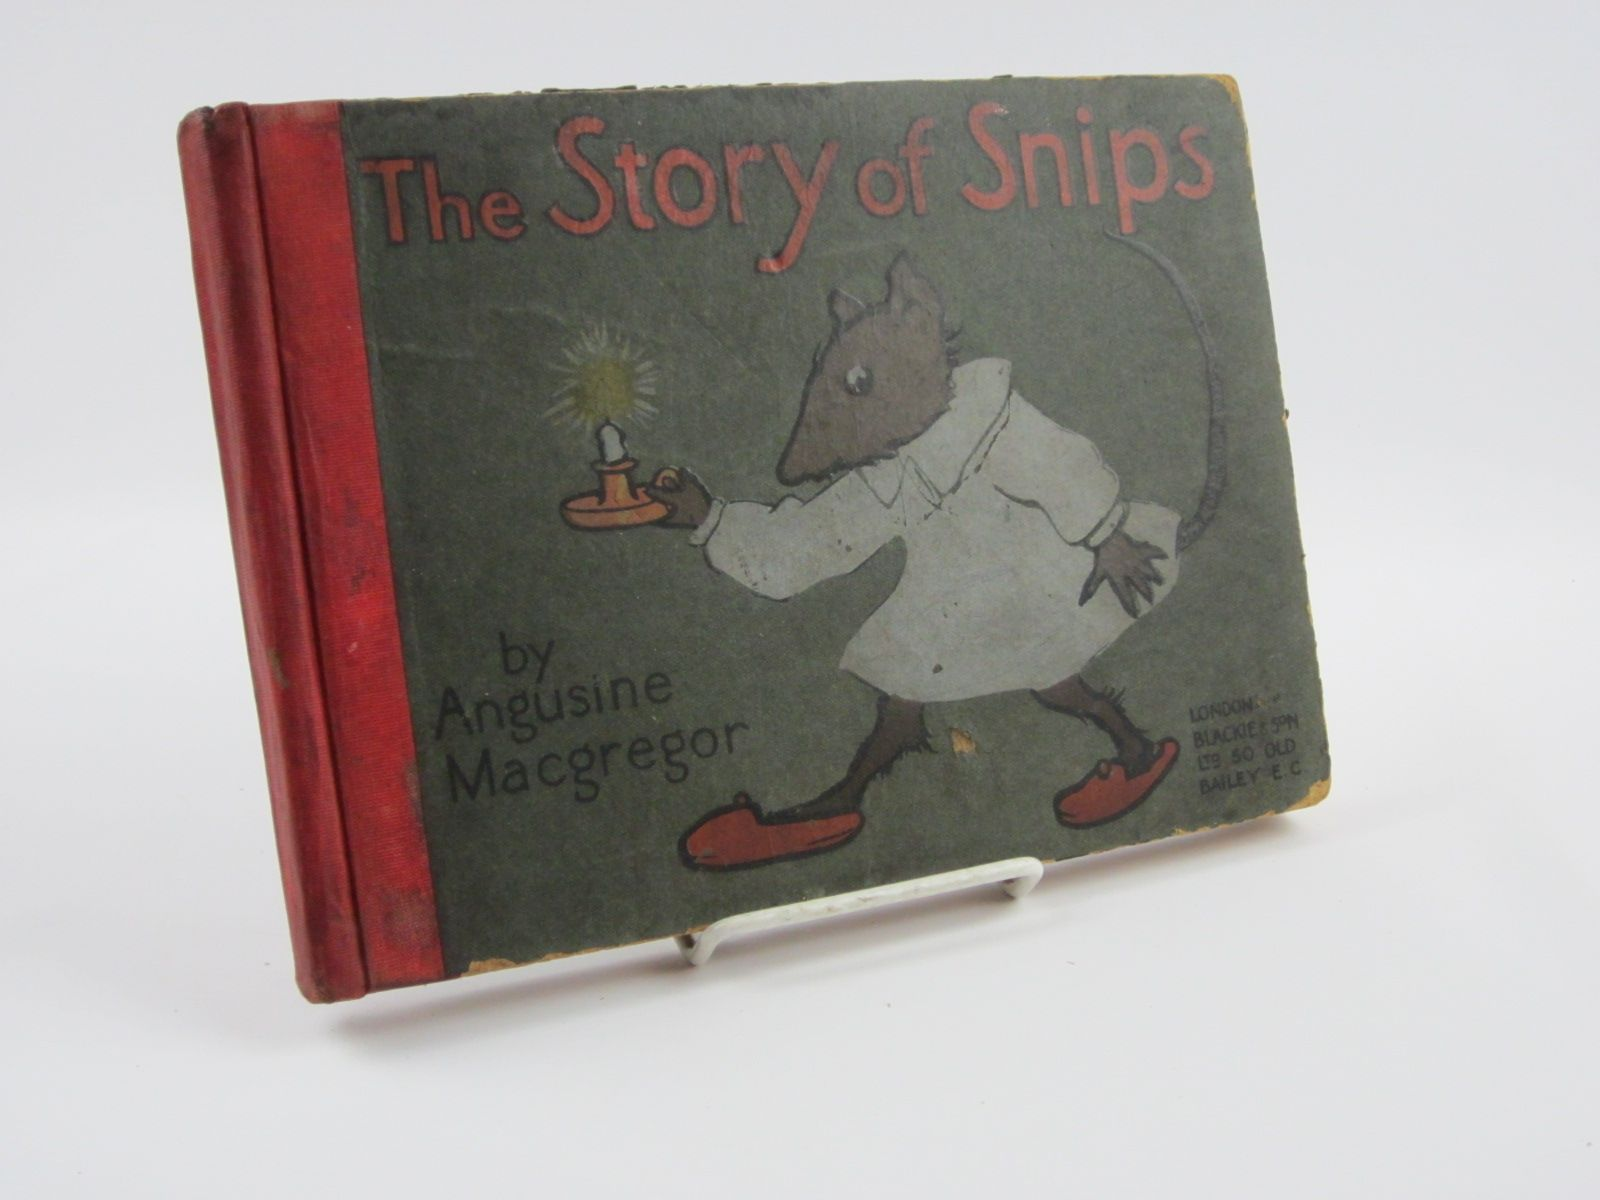 Photo of THE STORY OF SNIPS written by MacGregor, Angusine illustrated by Macgregor, Angusine published by Blackie & Son Ltd. (STOCK CODE: 1309804)  for sale by Stella & Rose's Books